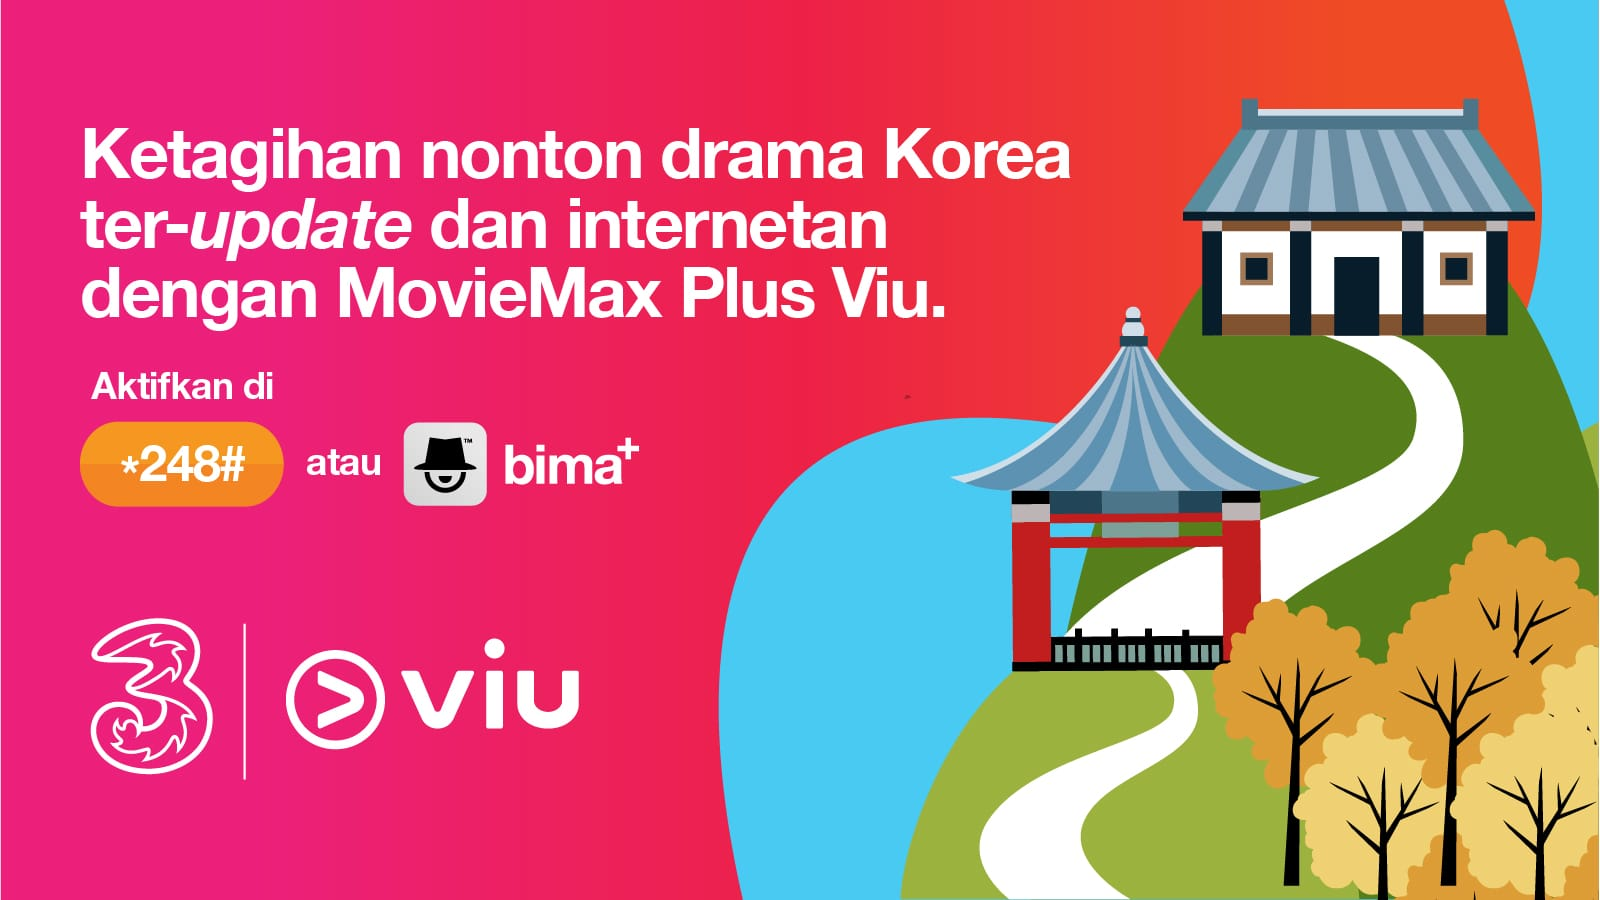 MovieMax Plus Viu | Tri Indonesia